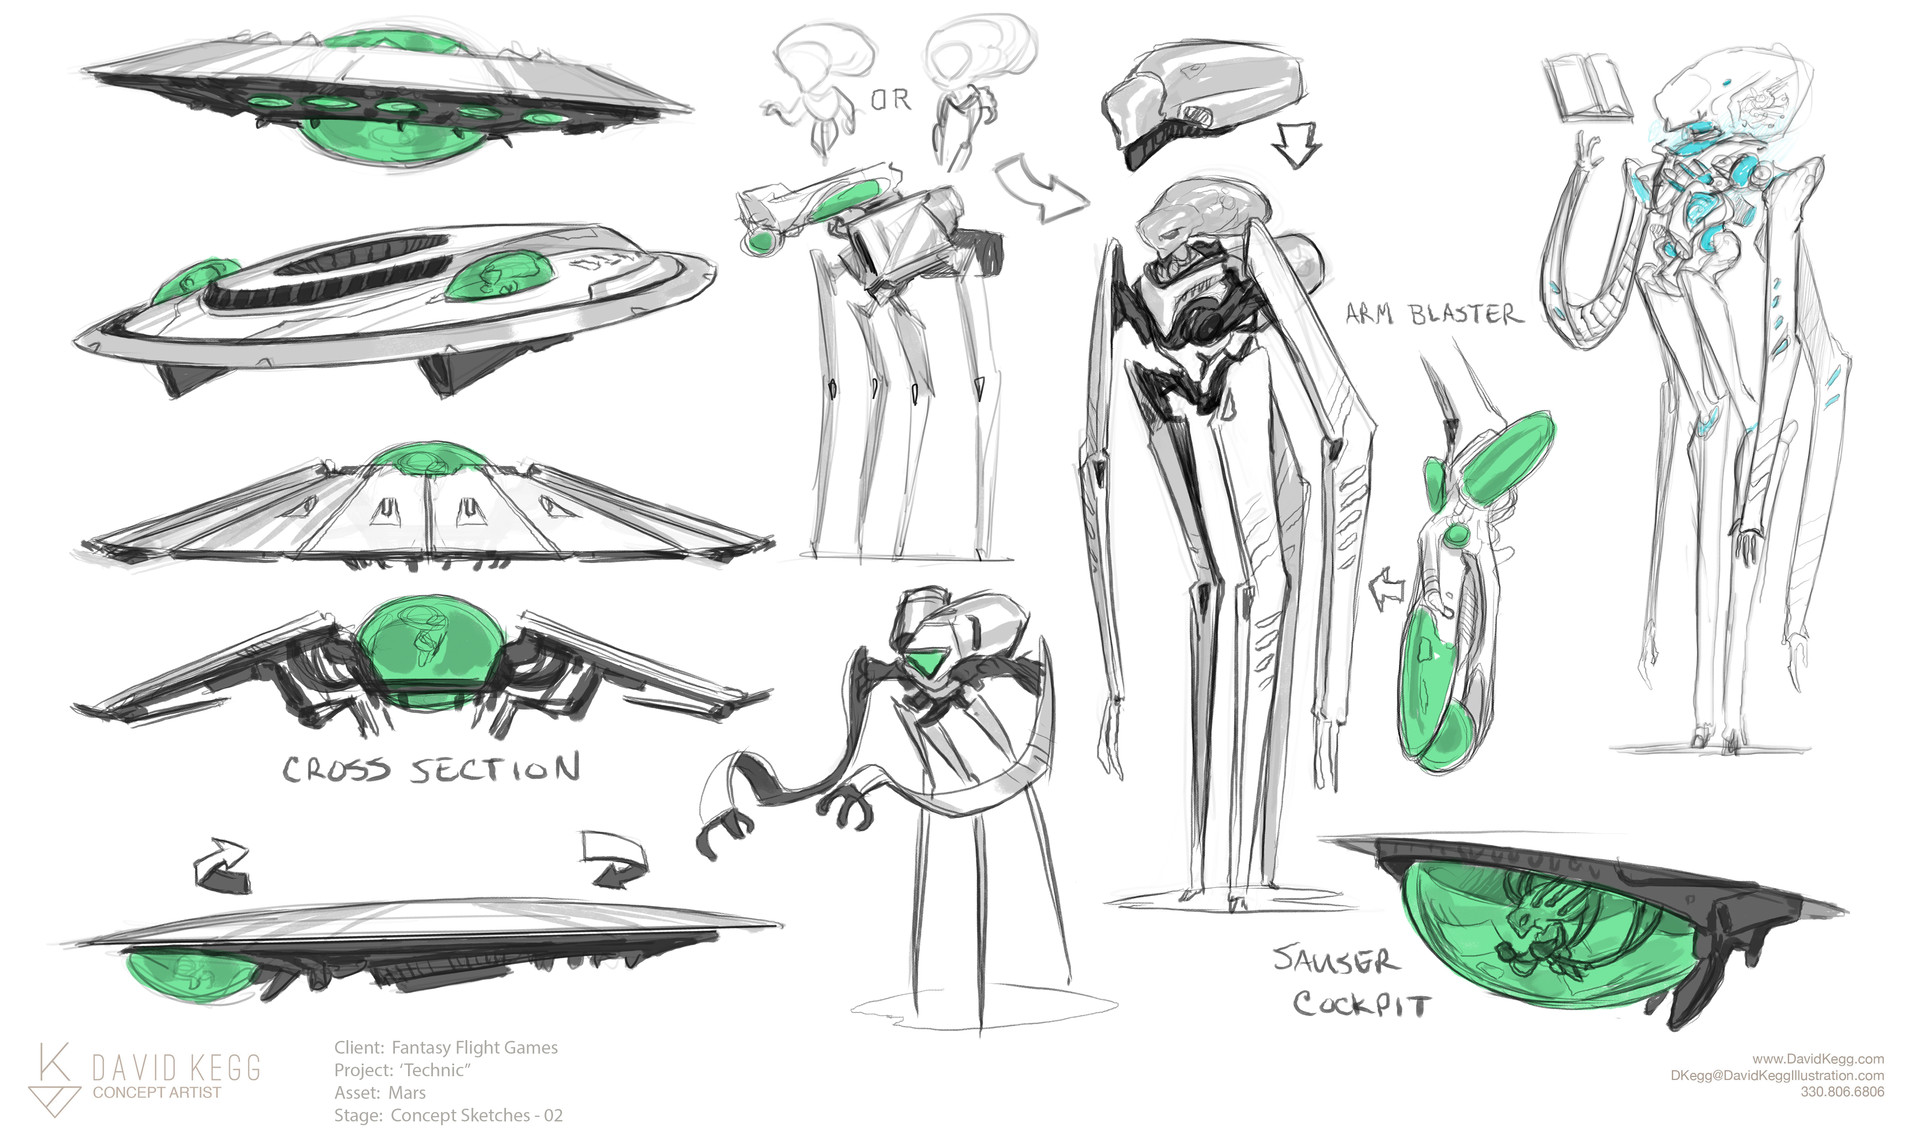 David kegg kegg ffgtechnic mars conceptsketches 02